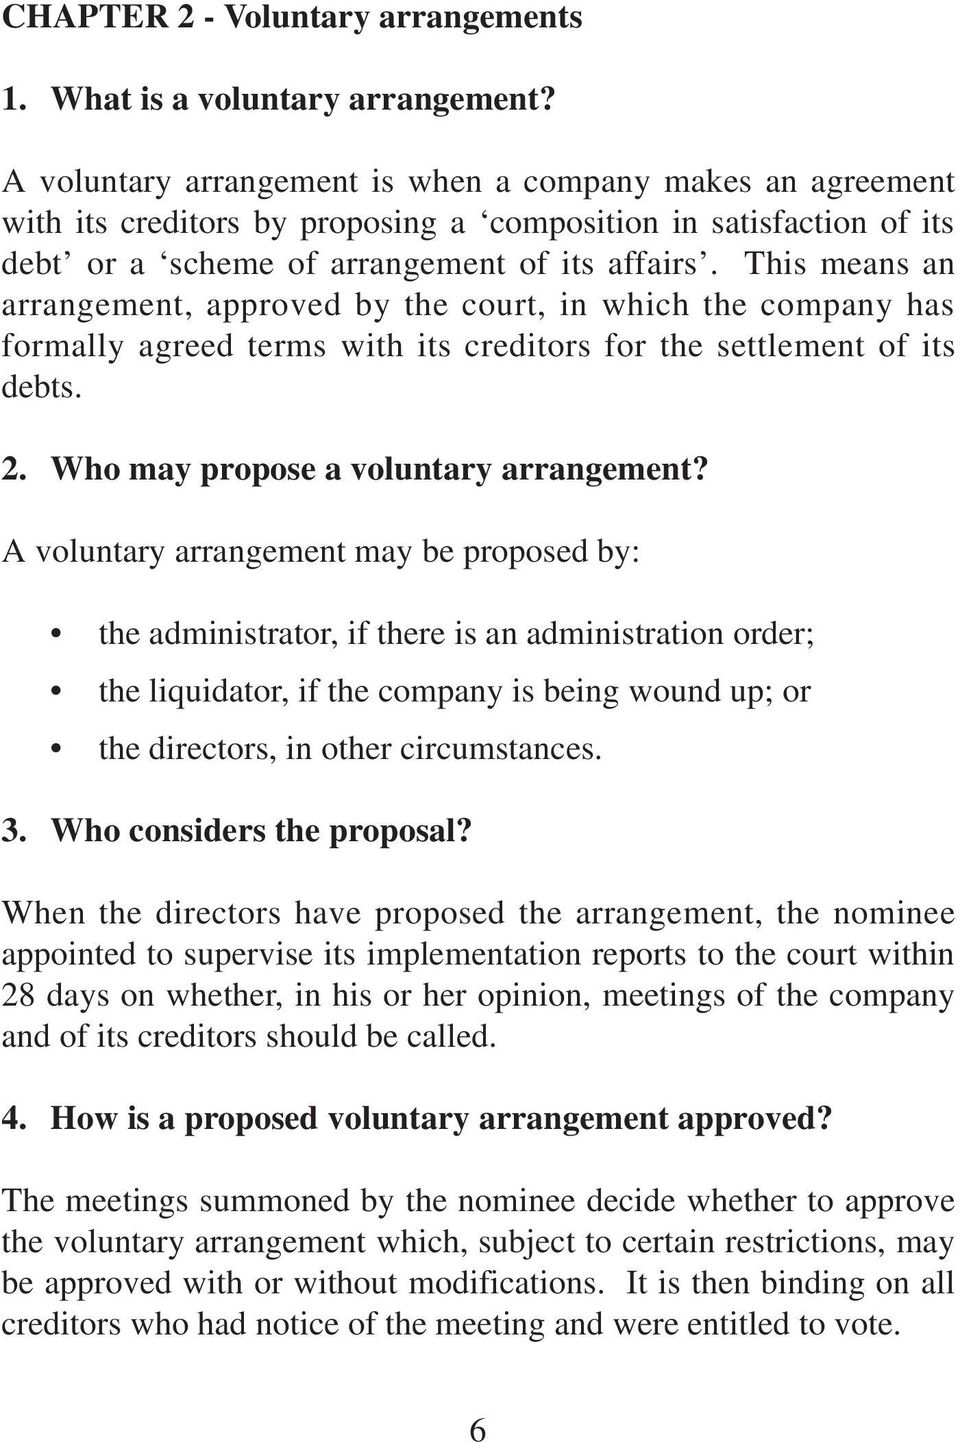 This means an arrangement, approved by the court, in which the company has formally agreed terms with its creditors for the settlement of its debts. 2. Who may propose a voluntary arrangement?